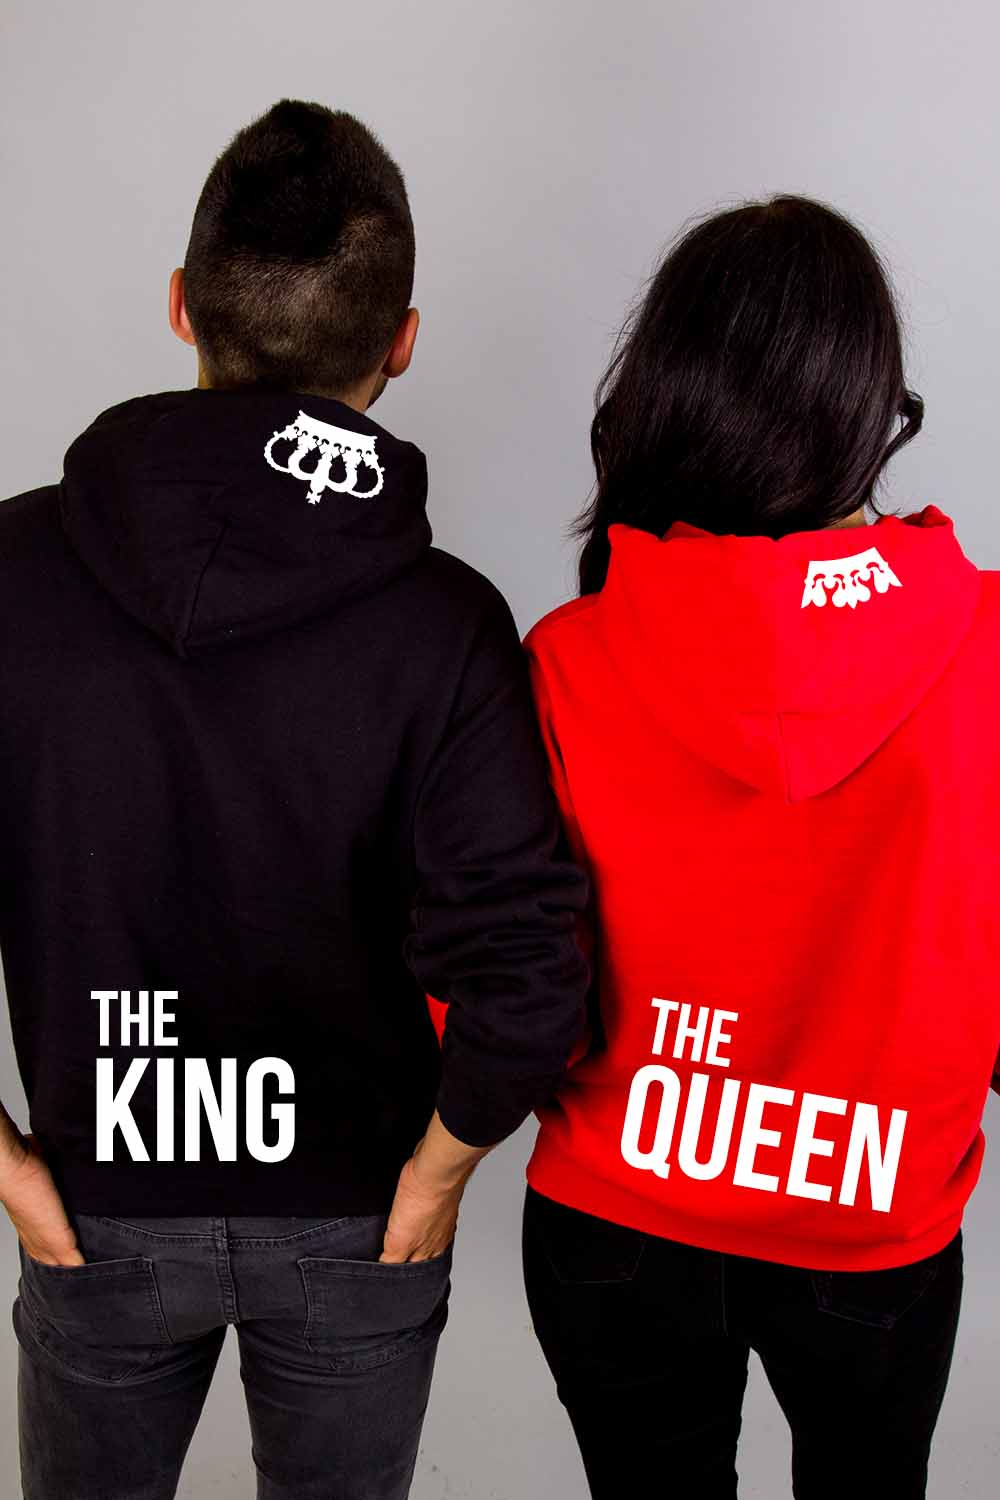 The King Queen back edition Páros Kap. pulóver – Yourstore 4046ab8abe